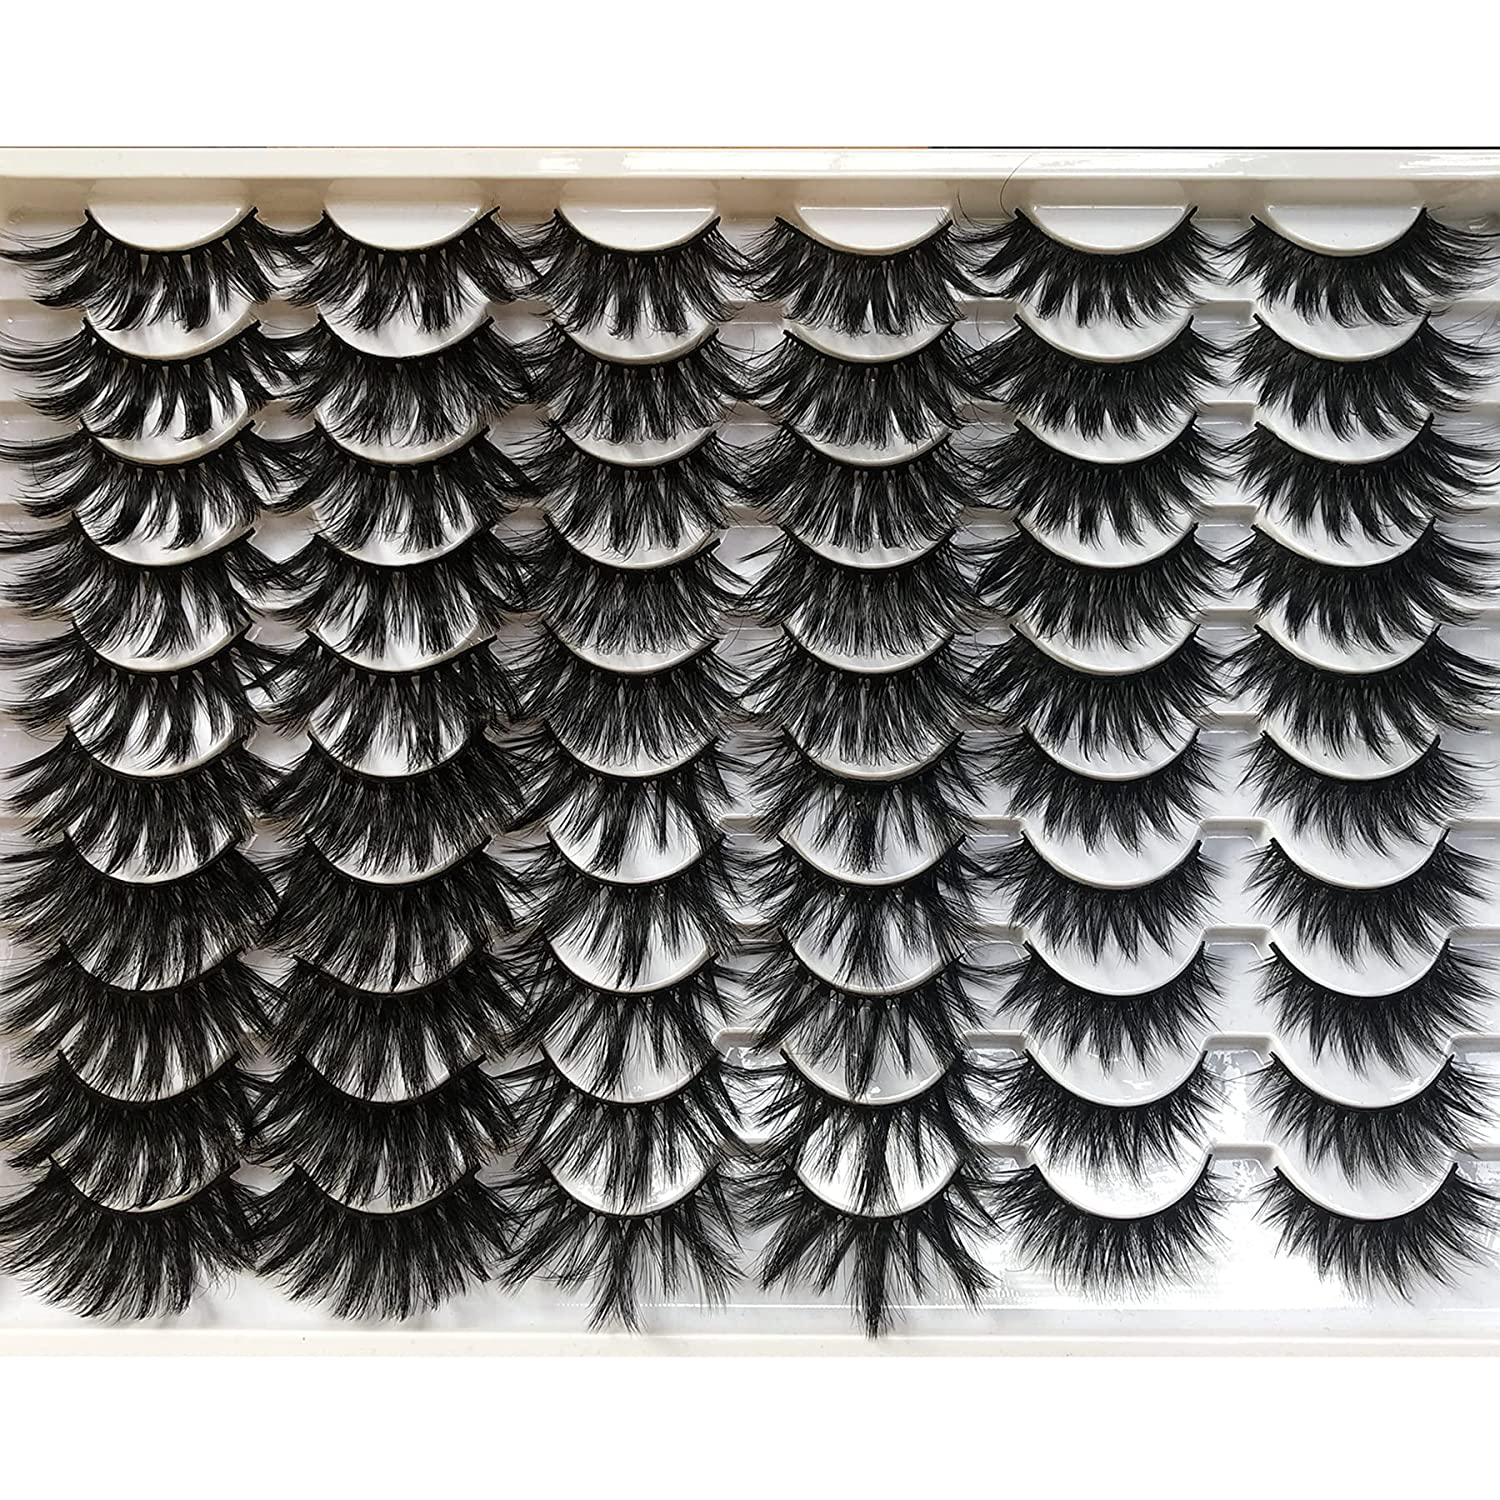 Gmagictobo Fluffy Mink 5% OFF Free shipping on posting reviews Eyelashes Dramatic 20MM Wholesale Thick